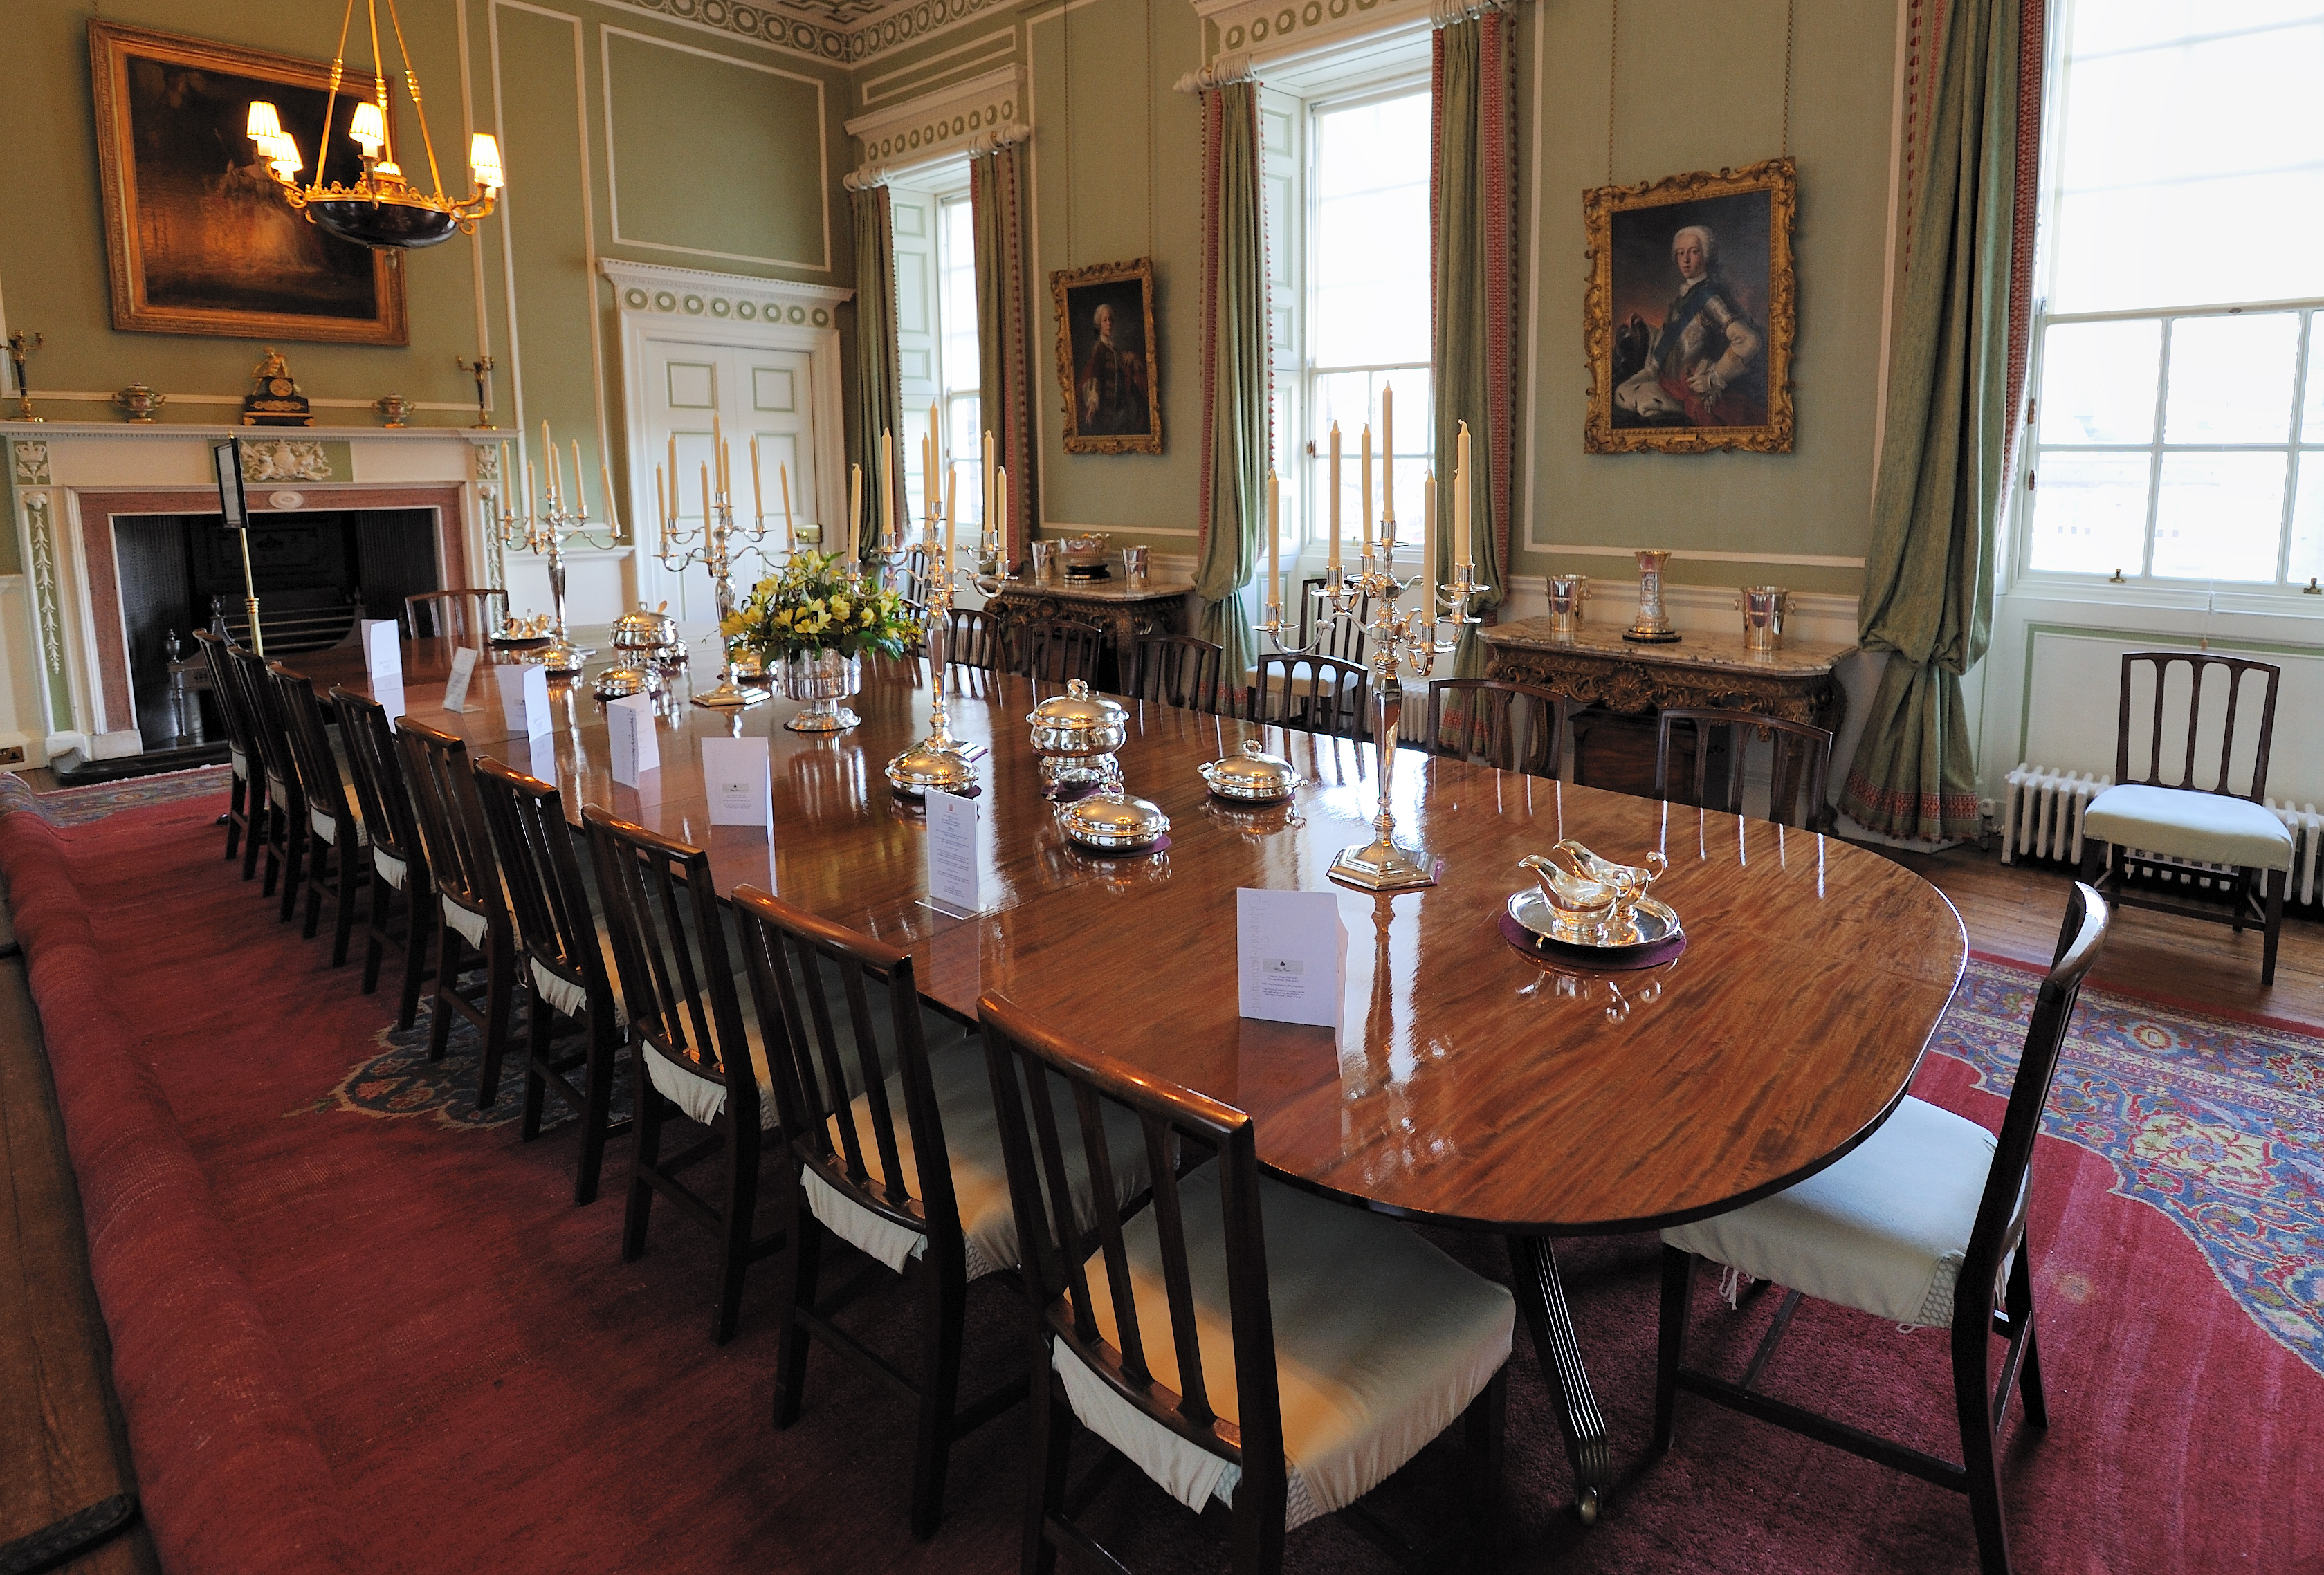 FileHolyrood Palace Dining Roomjpg Wikimedia Commons